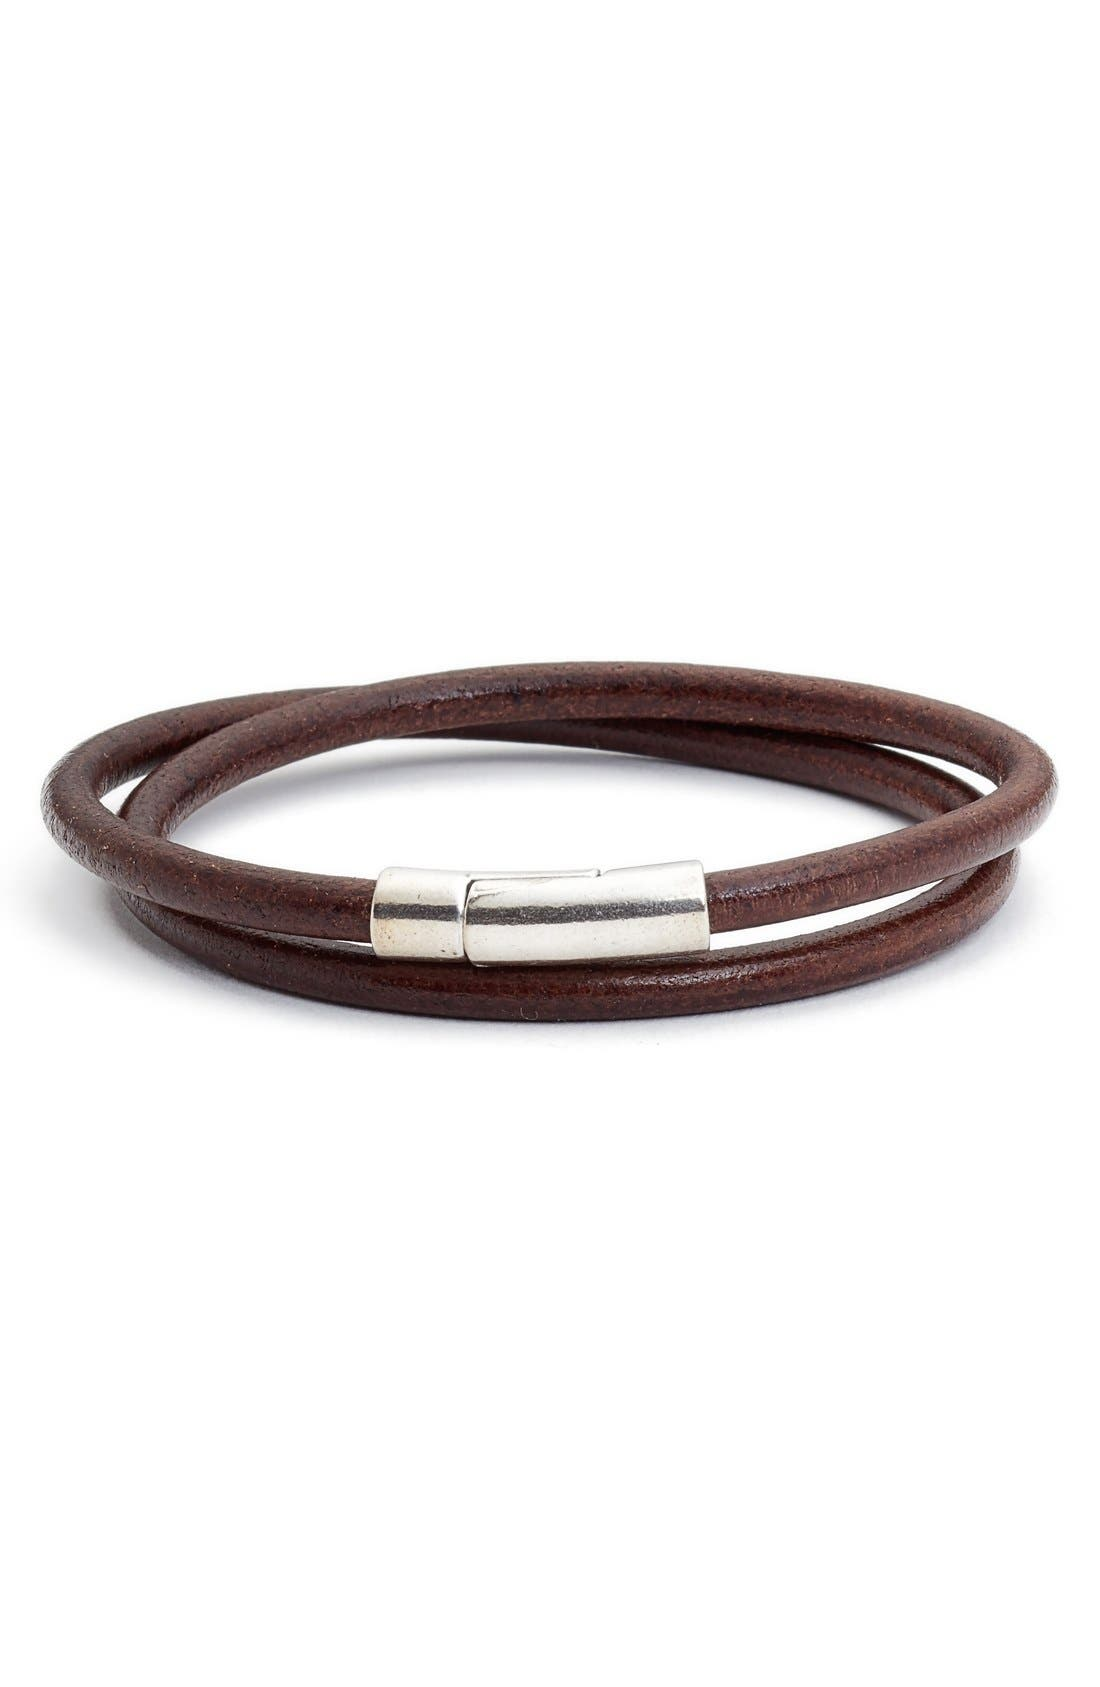 Torino Belts Leather Wrap Bracelet